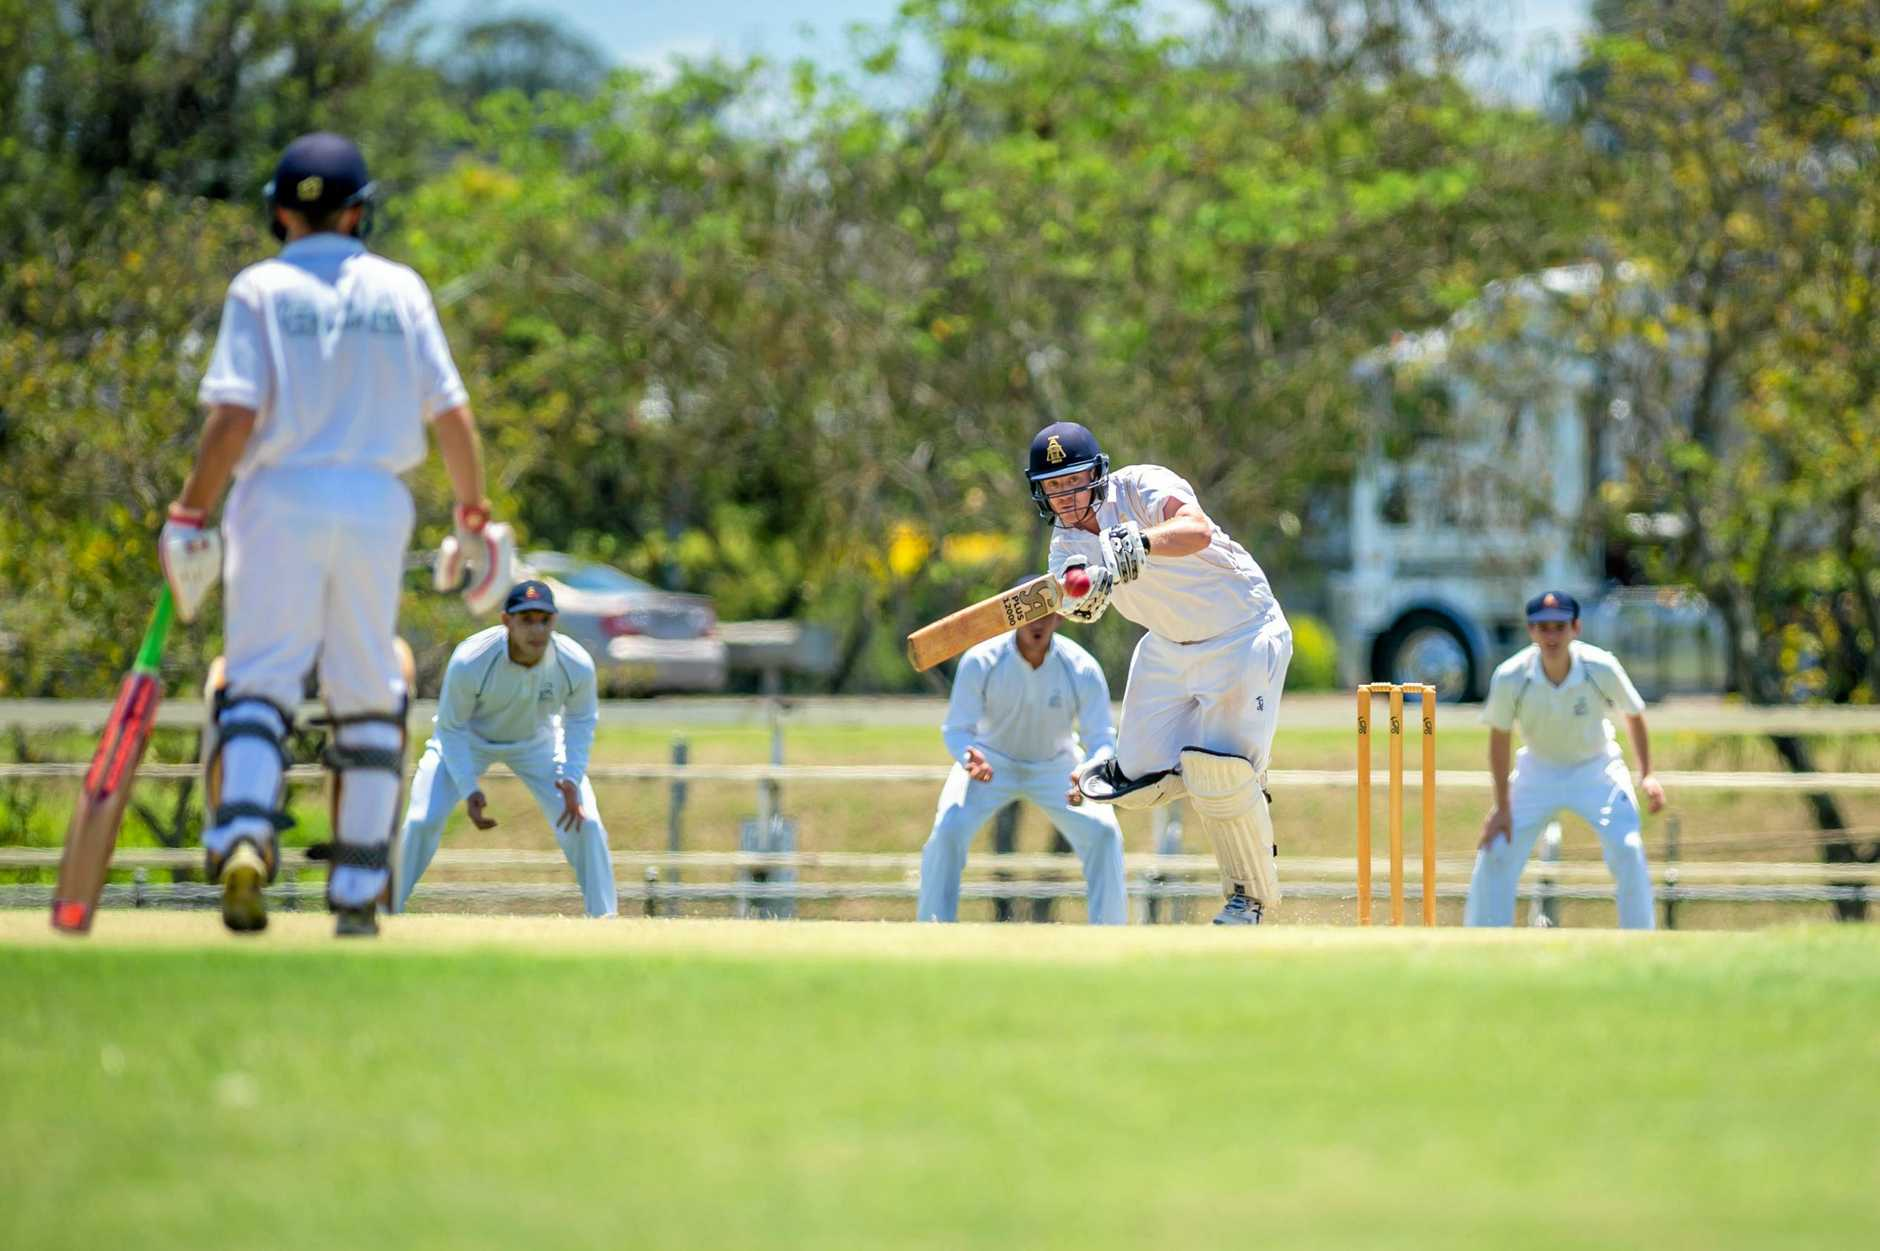 Cricket - Gympie Gold Lewis Waugh Gympie Gold XI